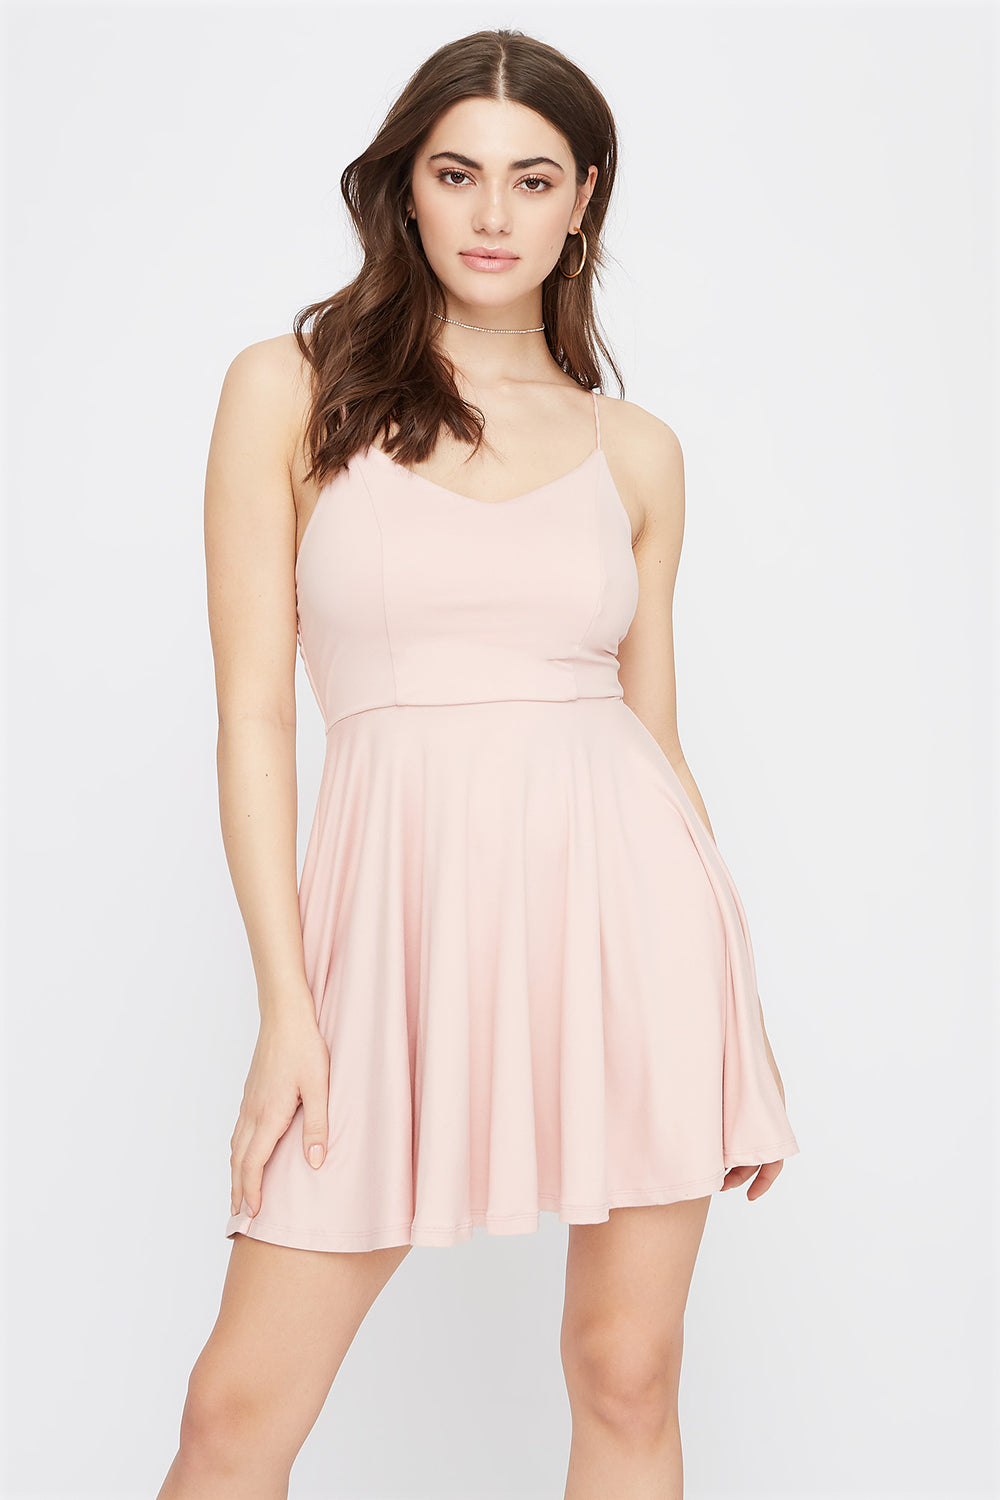 Soft V-Neck Criss Cross Back Skater Dress Rose